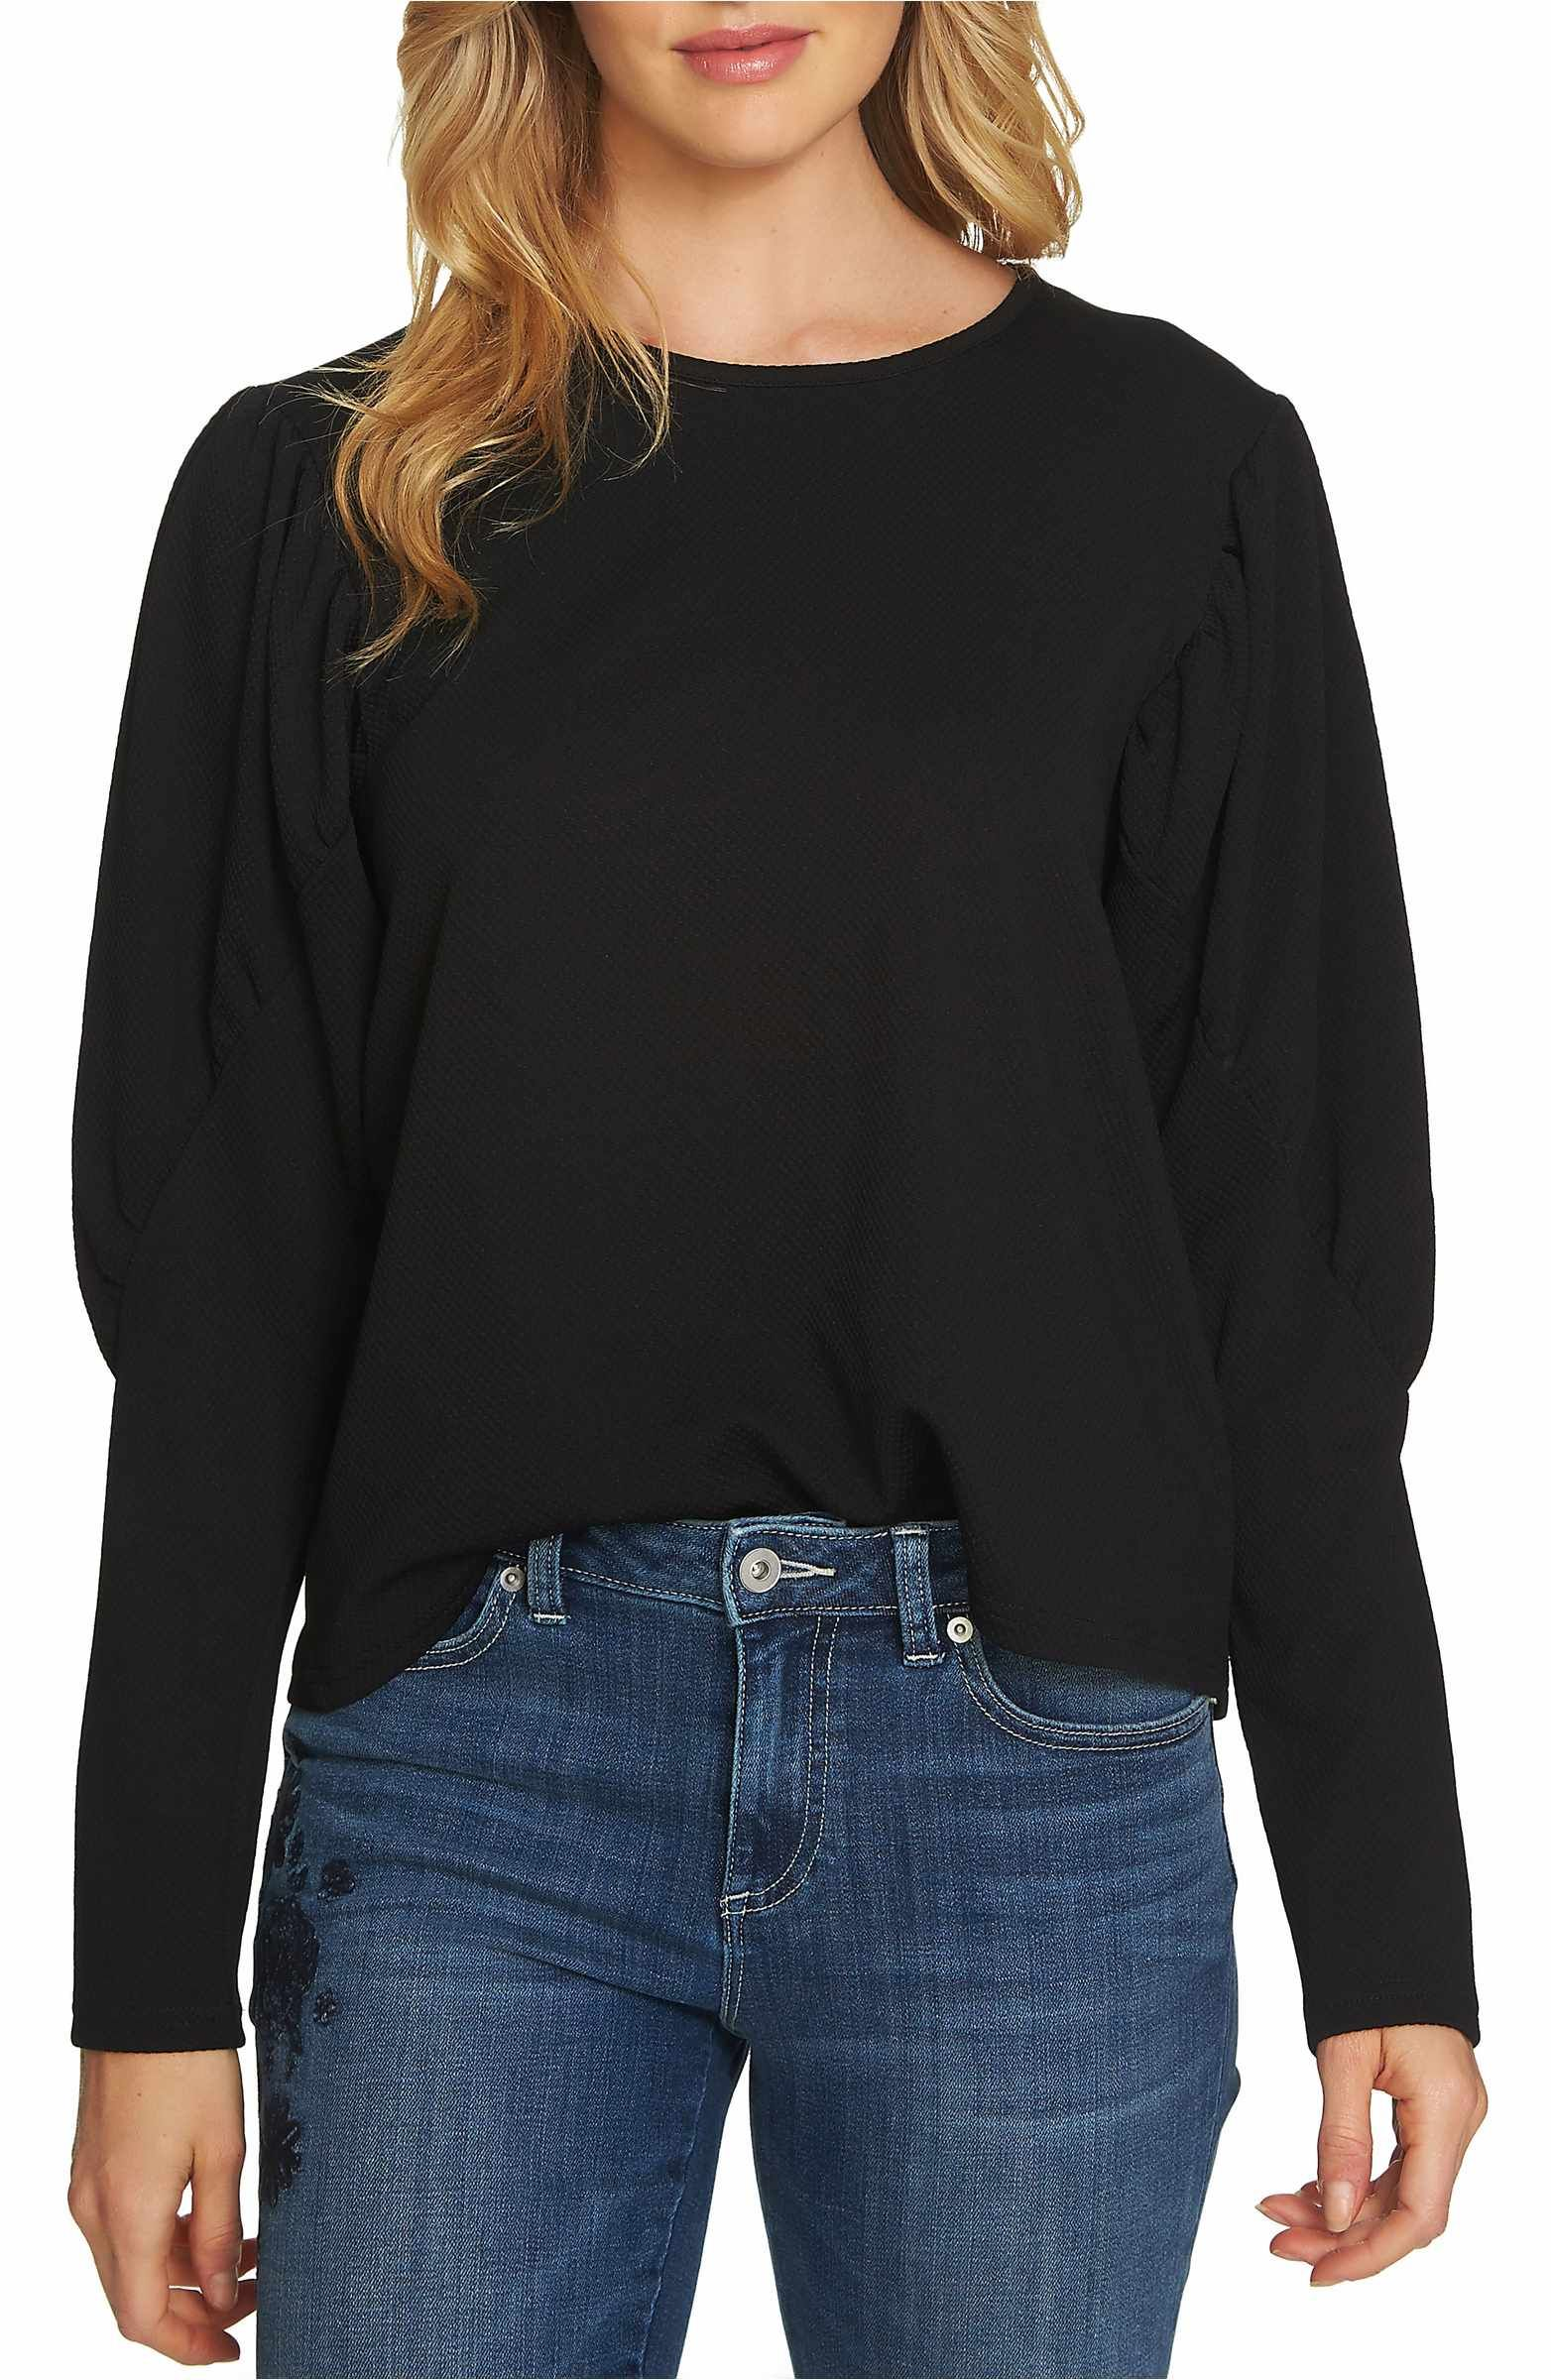 CeCe Puffed Shoulder Top | Puffy shoulder, Casual tops, Top